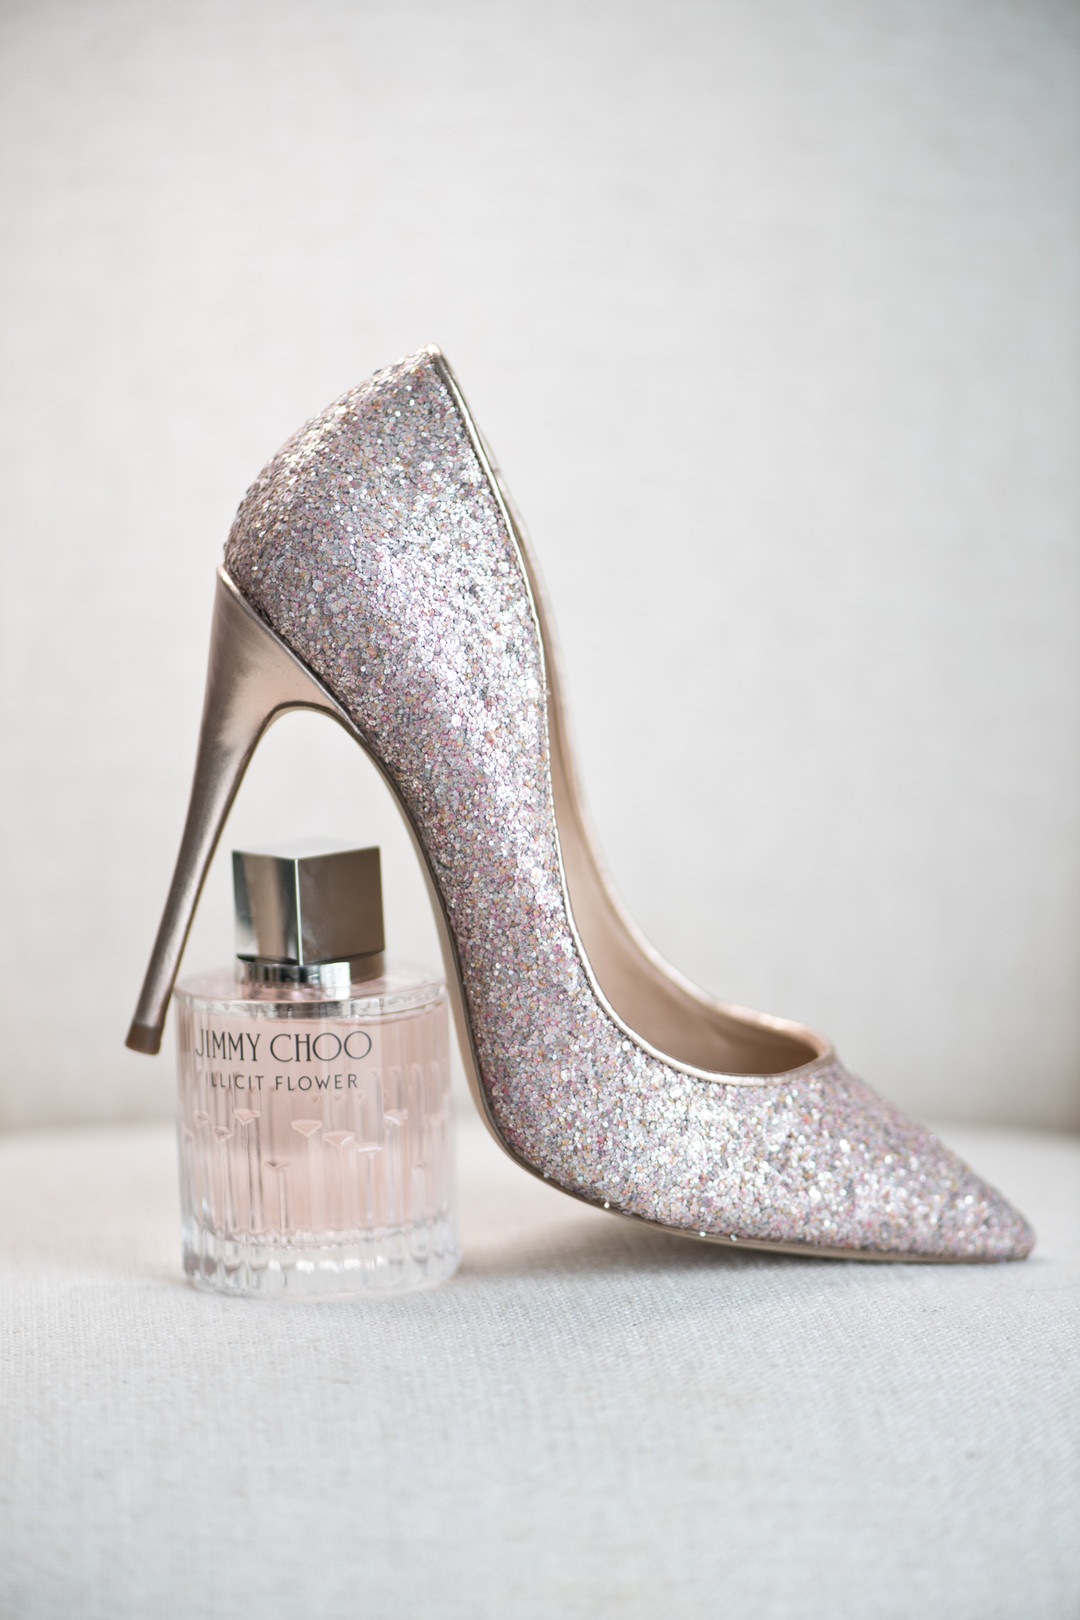 rose gold jimmy choo shoe